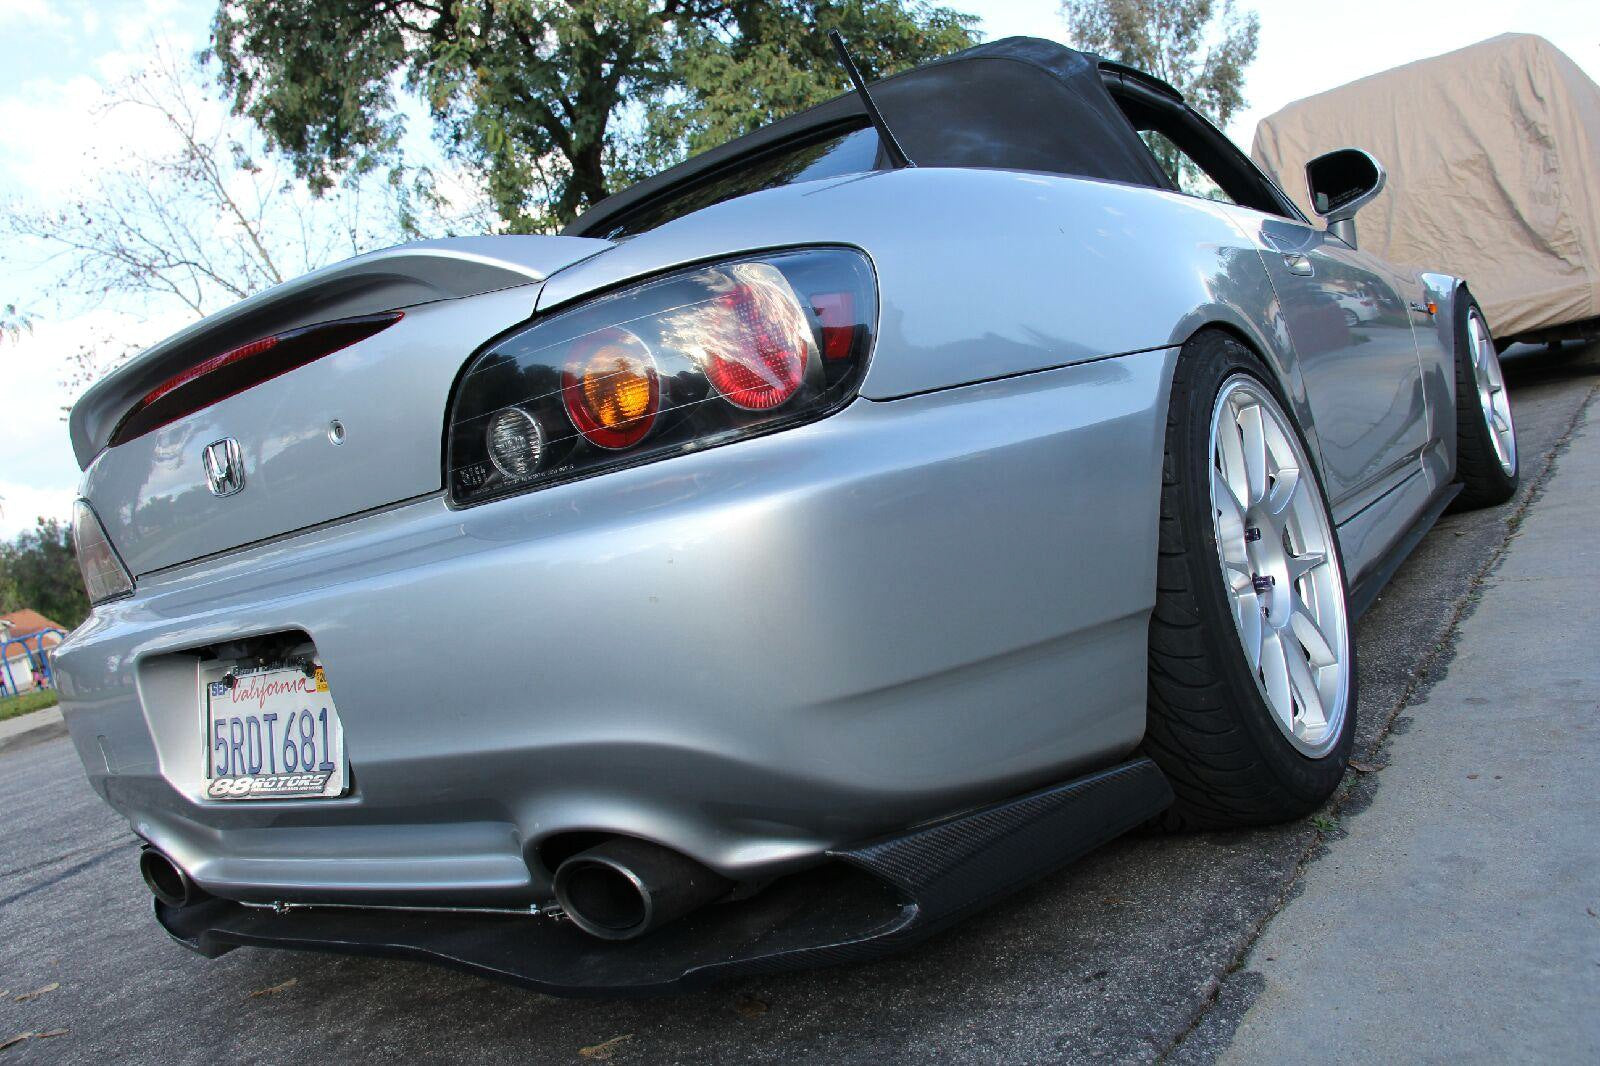 Sti For Sale >> Ambit RS18 | Honda S2000 | 18x9.5 +38 - Ambit Wheels